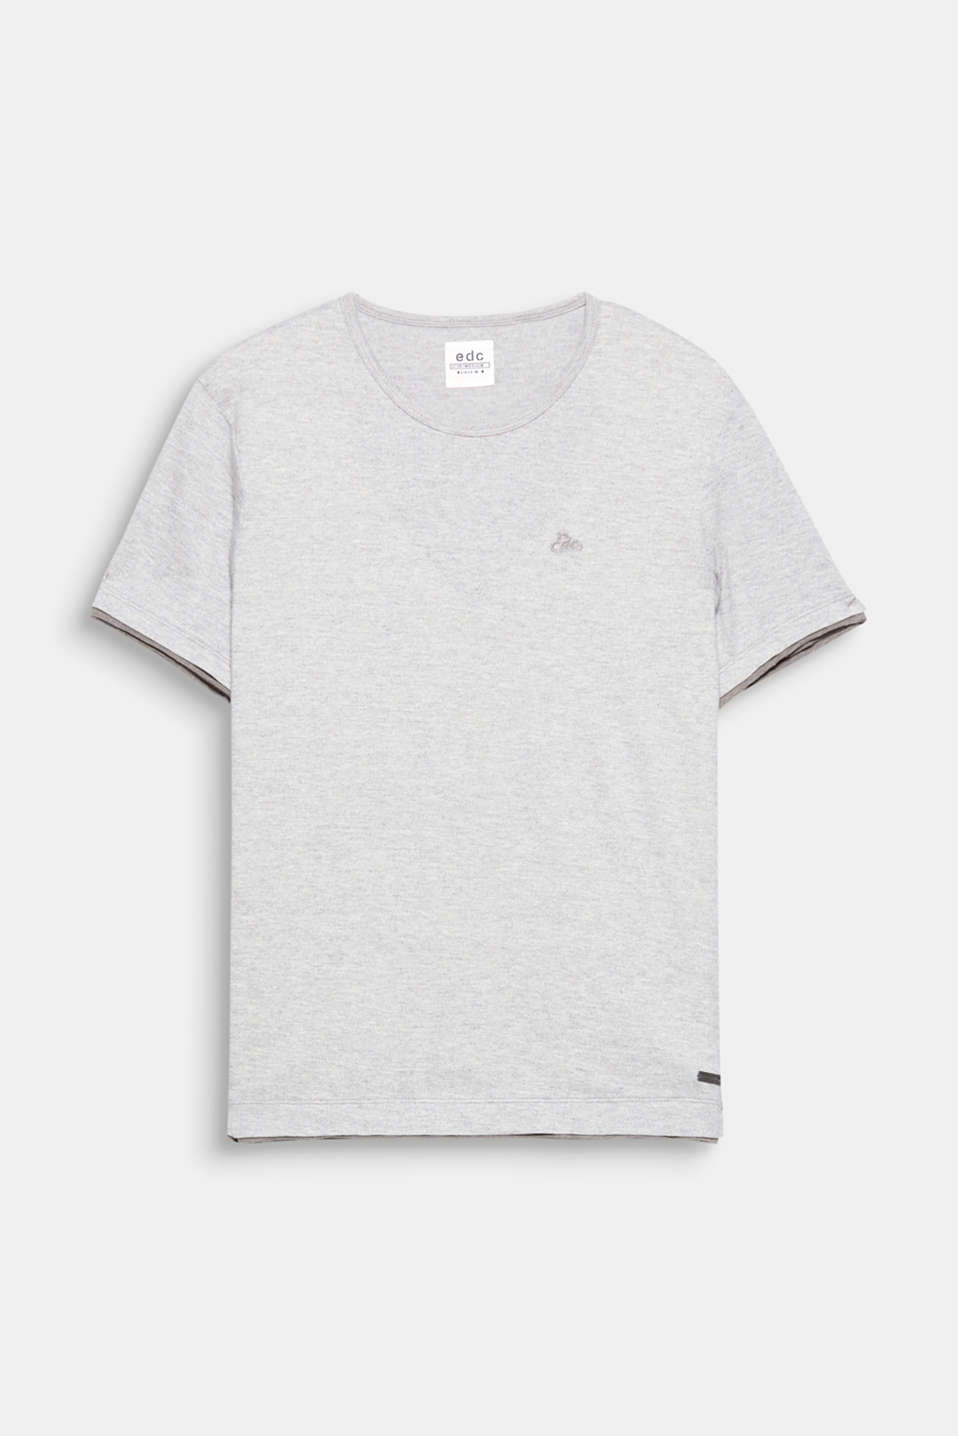 A casual basic: layer-look T-shirt made of premium organic cotton